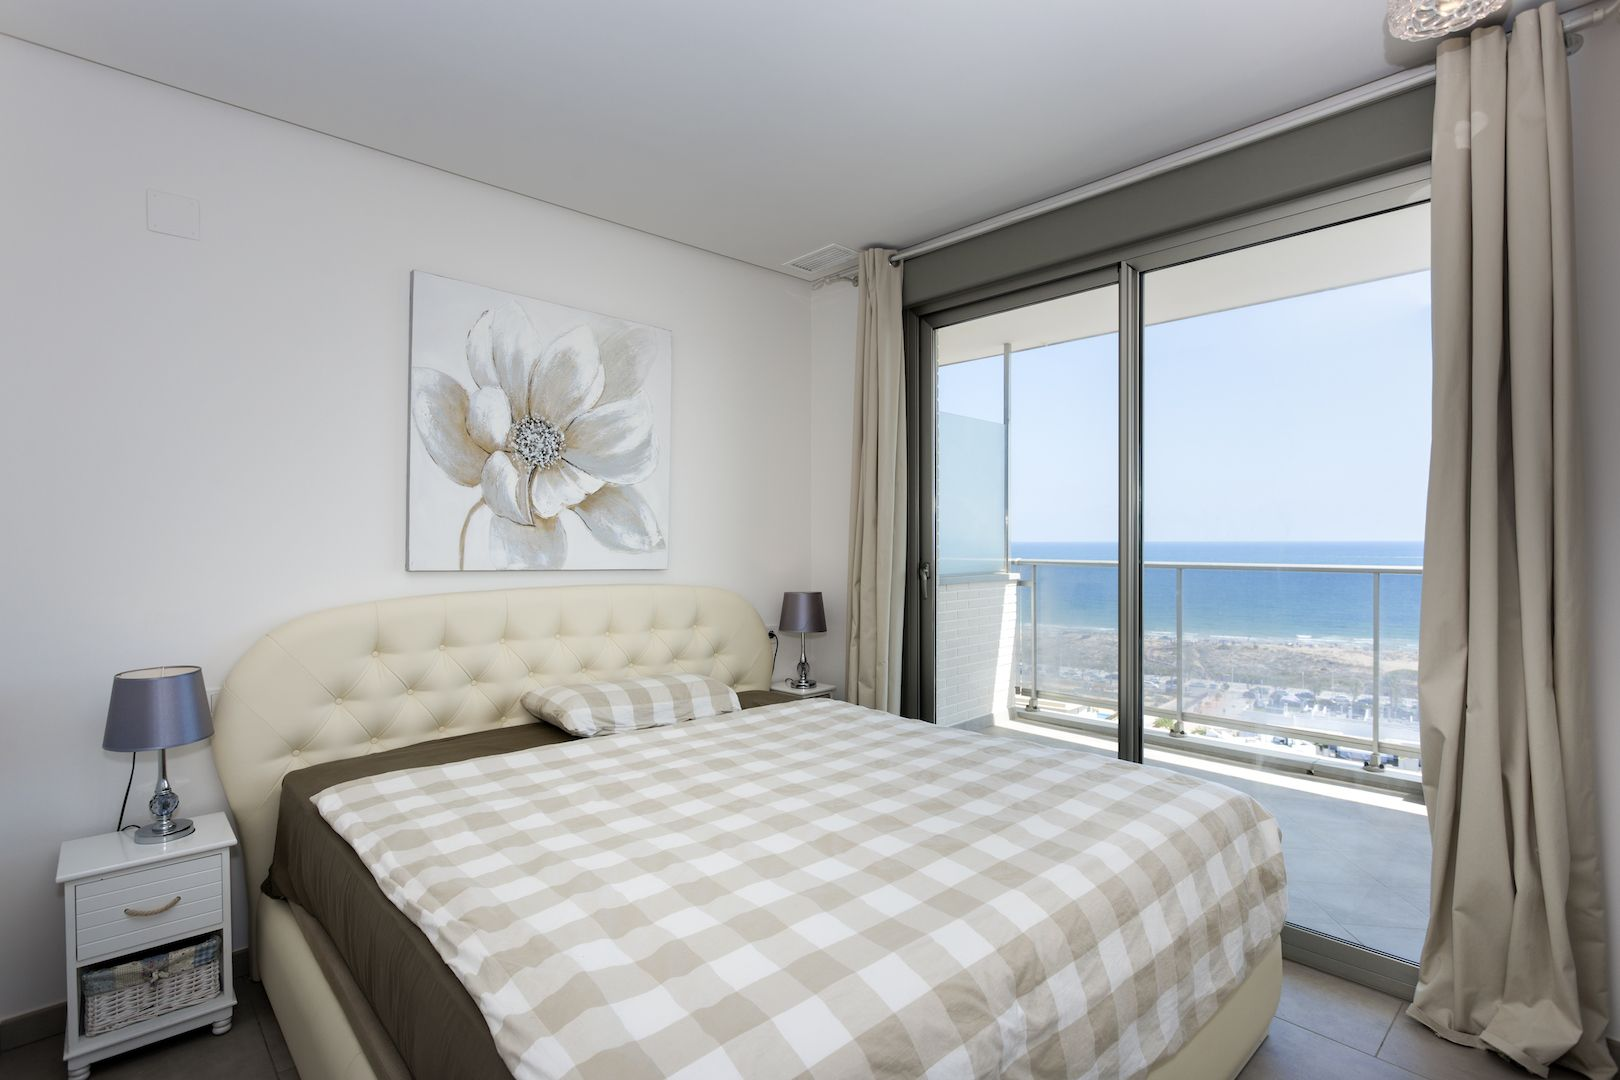 Flats and penthouses of 2, 3 and 4 bedrooms a few meters from the sea in Arenales del Sol. 11